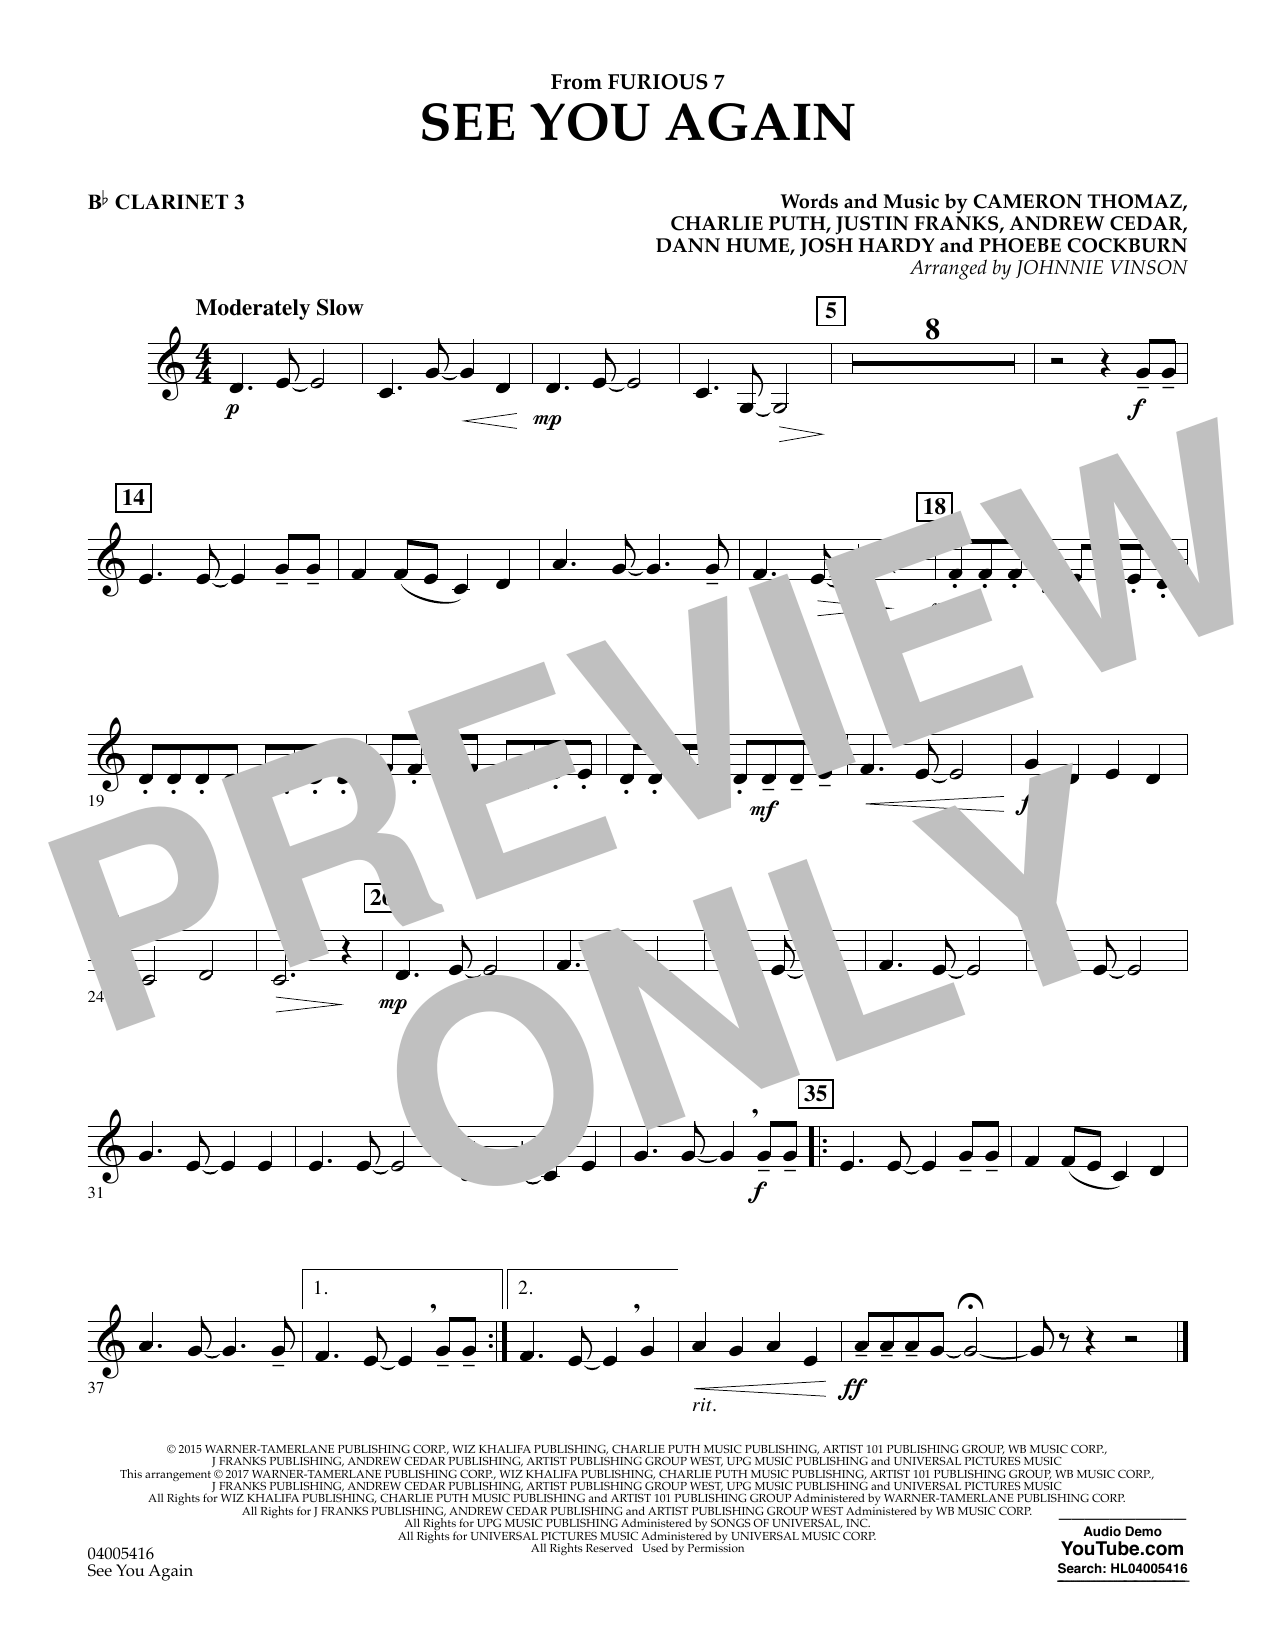 photo regarding Free Printable Clarinet Sheet Music identified as Johnnie Vinson Check out Yourself Back - Bb Clarinet 3 Sheet Tunes Notes, Chords  Down load Printable Live performance Band - SKU: 375786